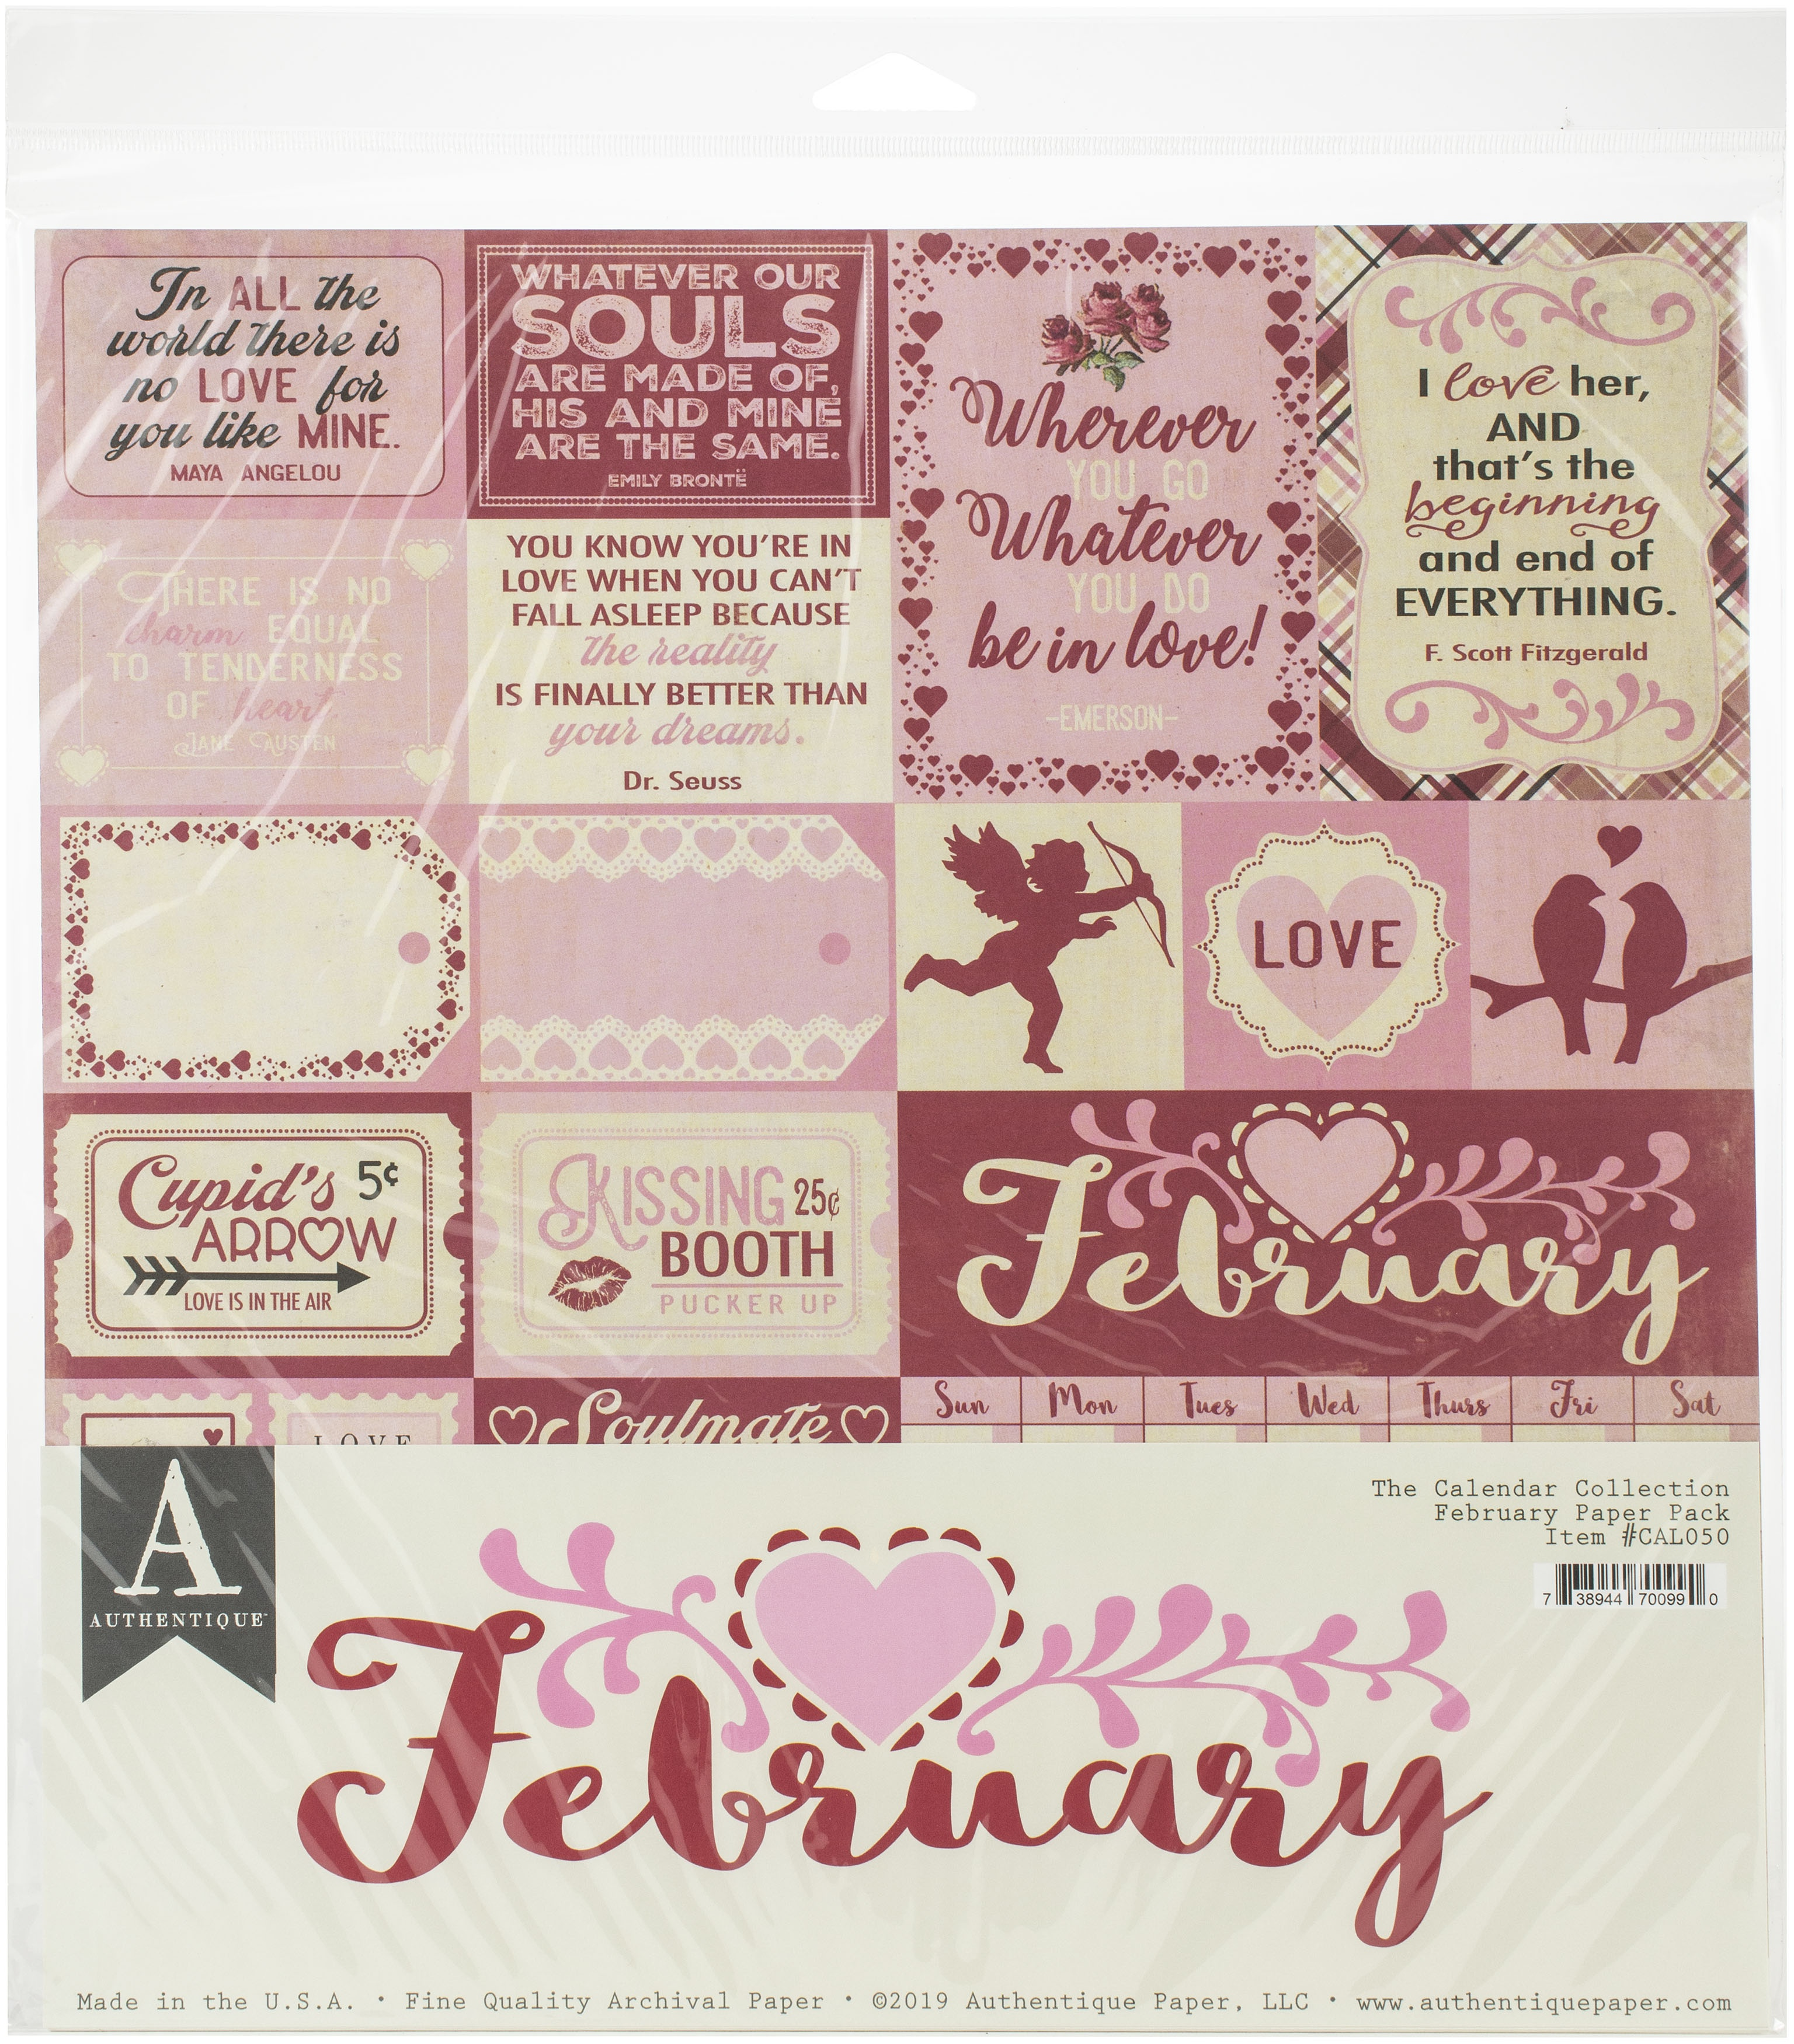 Authentique Double-Sided Cardstock Pack 12X12 11/Pkg-February, 3 Designs/3 Eac...